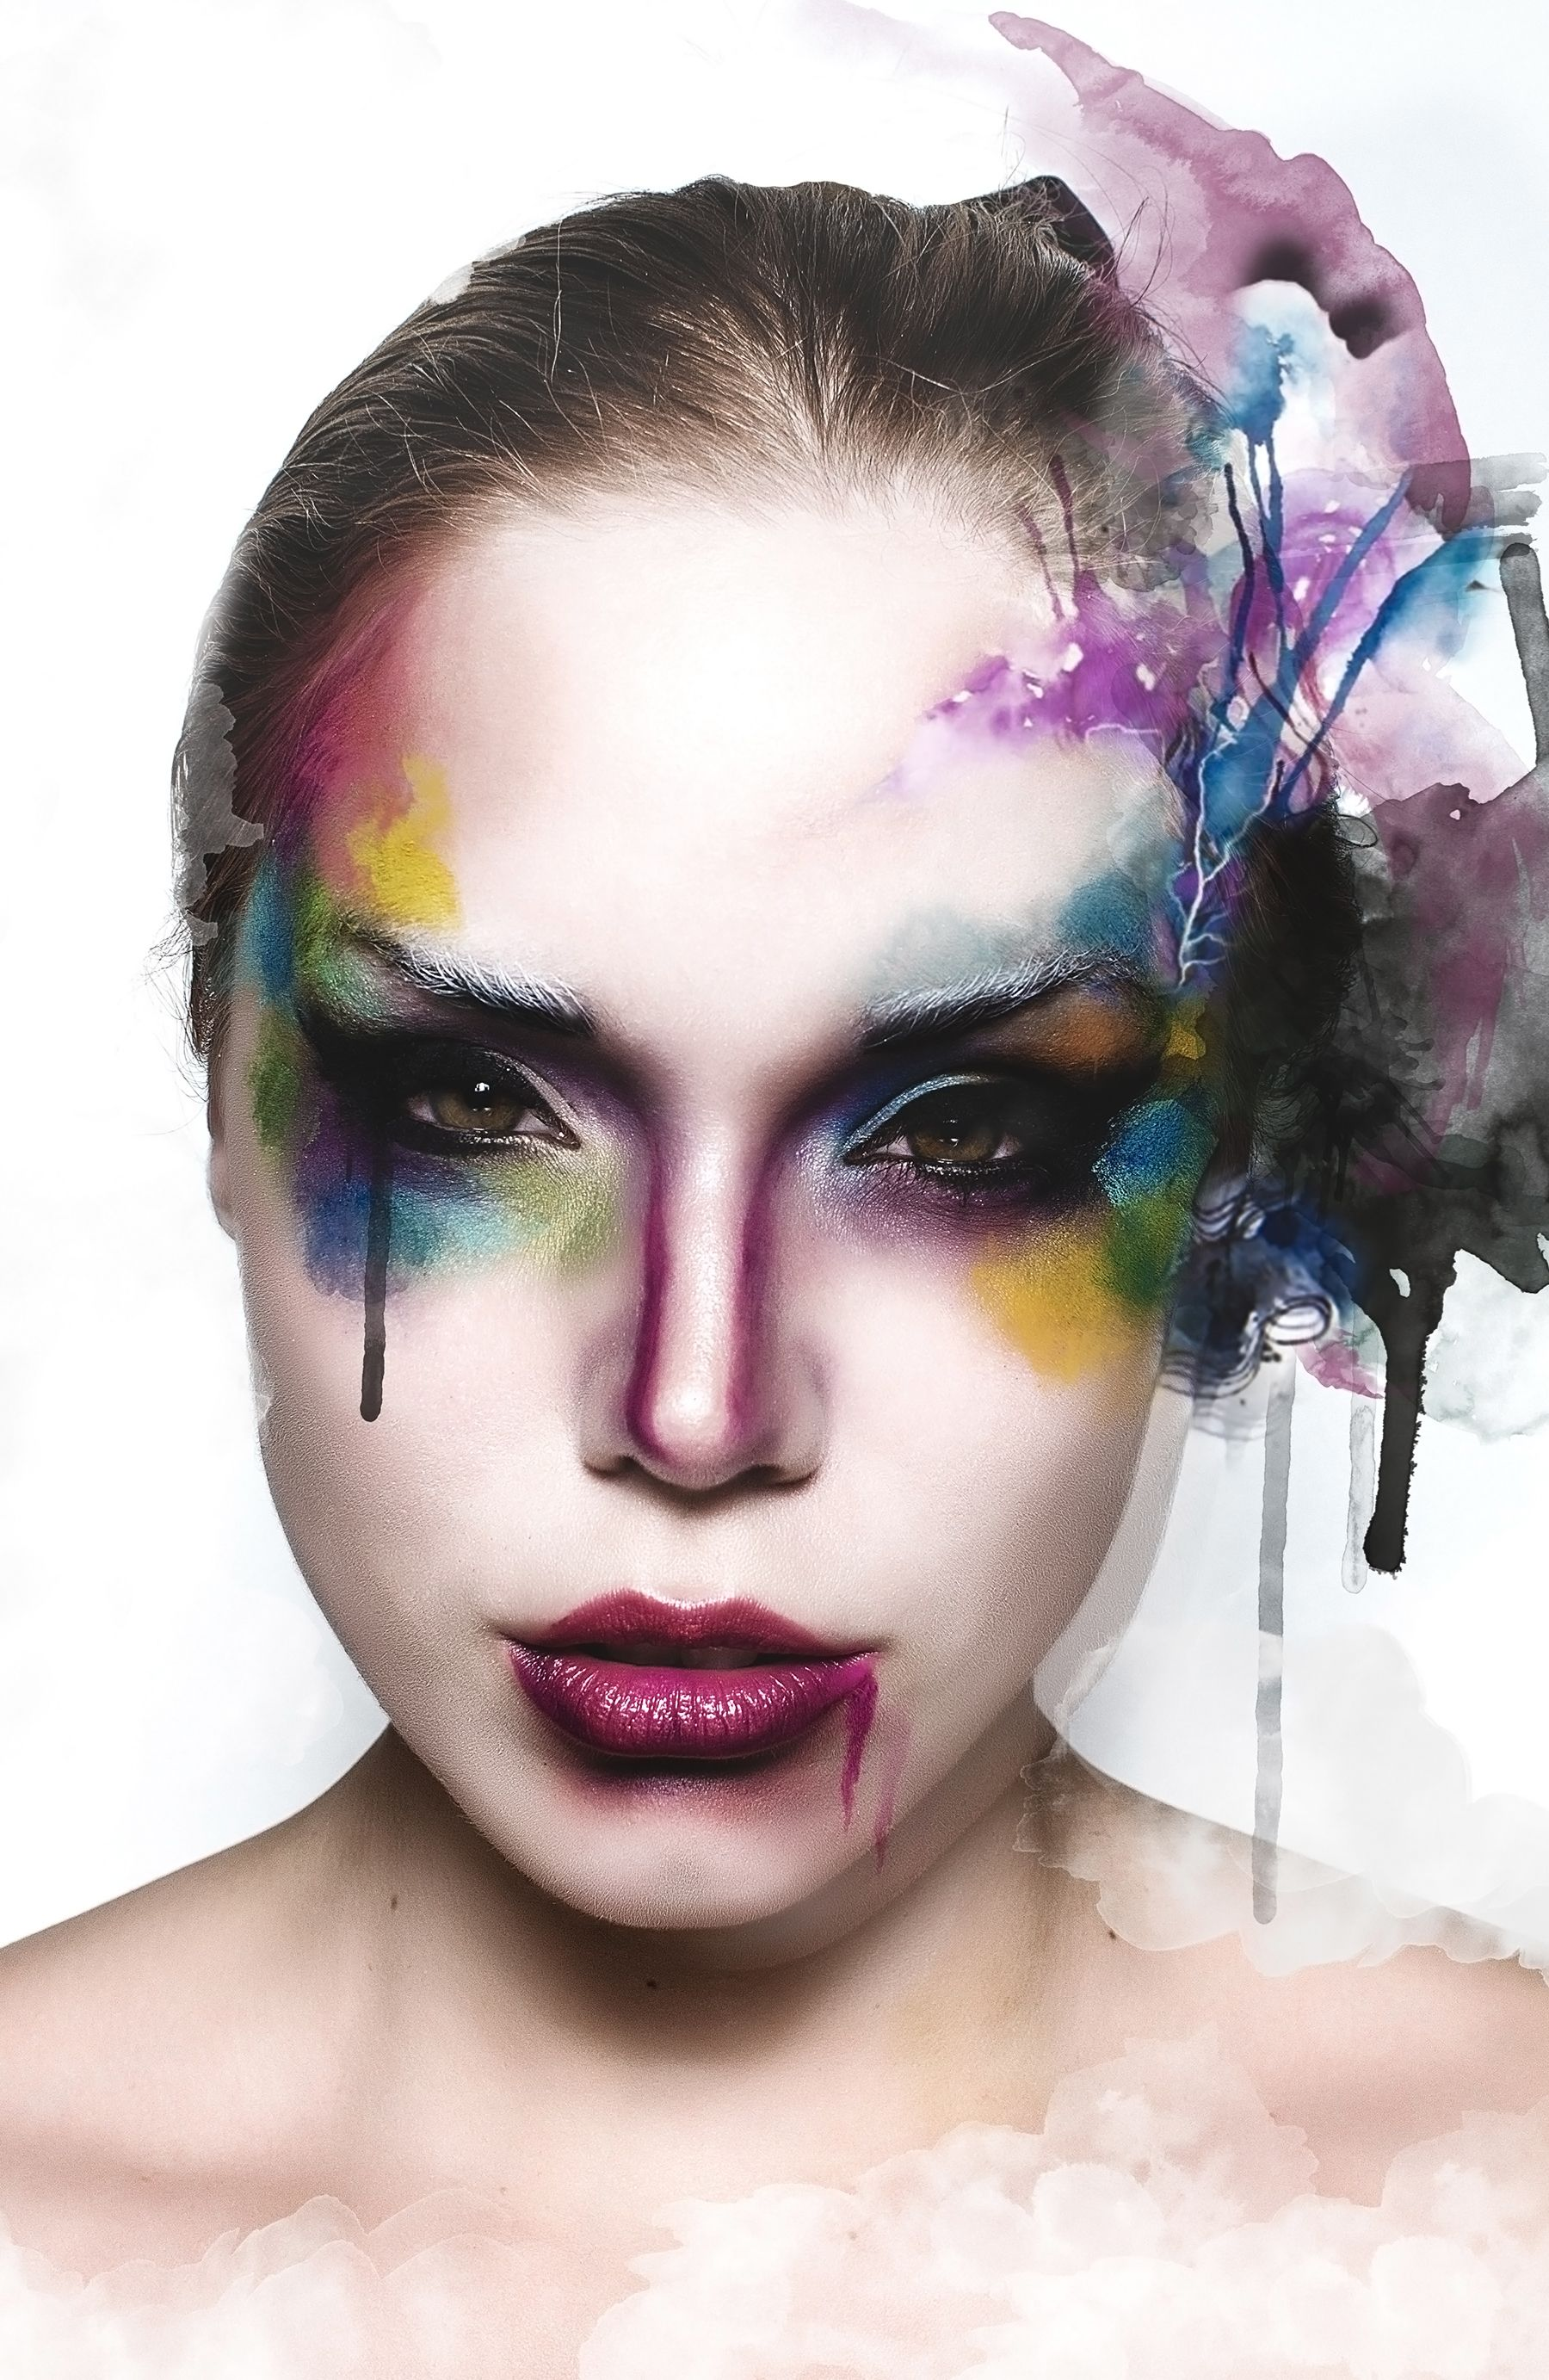 Artistic Director : Line Vanille Photography & Editing : http://500px.com/M-W Makeup artist : Marika D'Auteuil Artiste Maquilleure Models: Gabryela Vogua & Gabrielle Cosentino (Maven Management) This editorial is a tribute to watercolour artwork created by Artist Agnes Cecile.